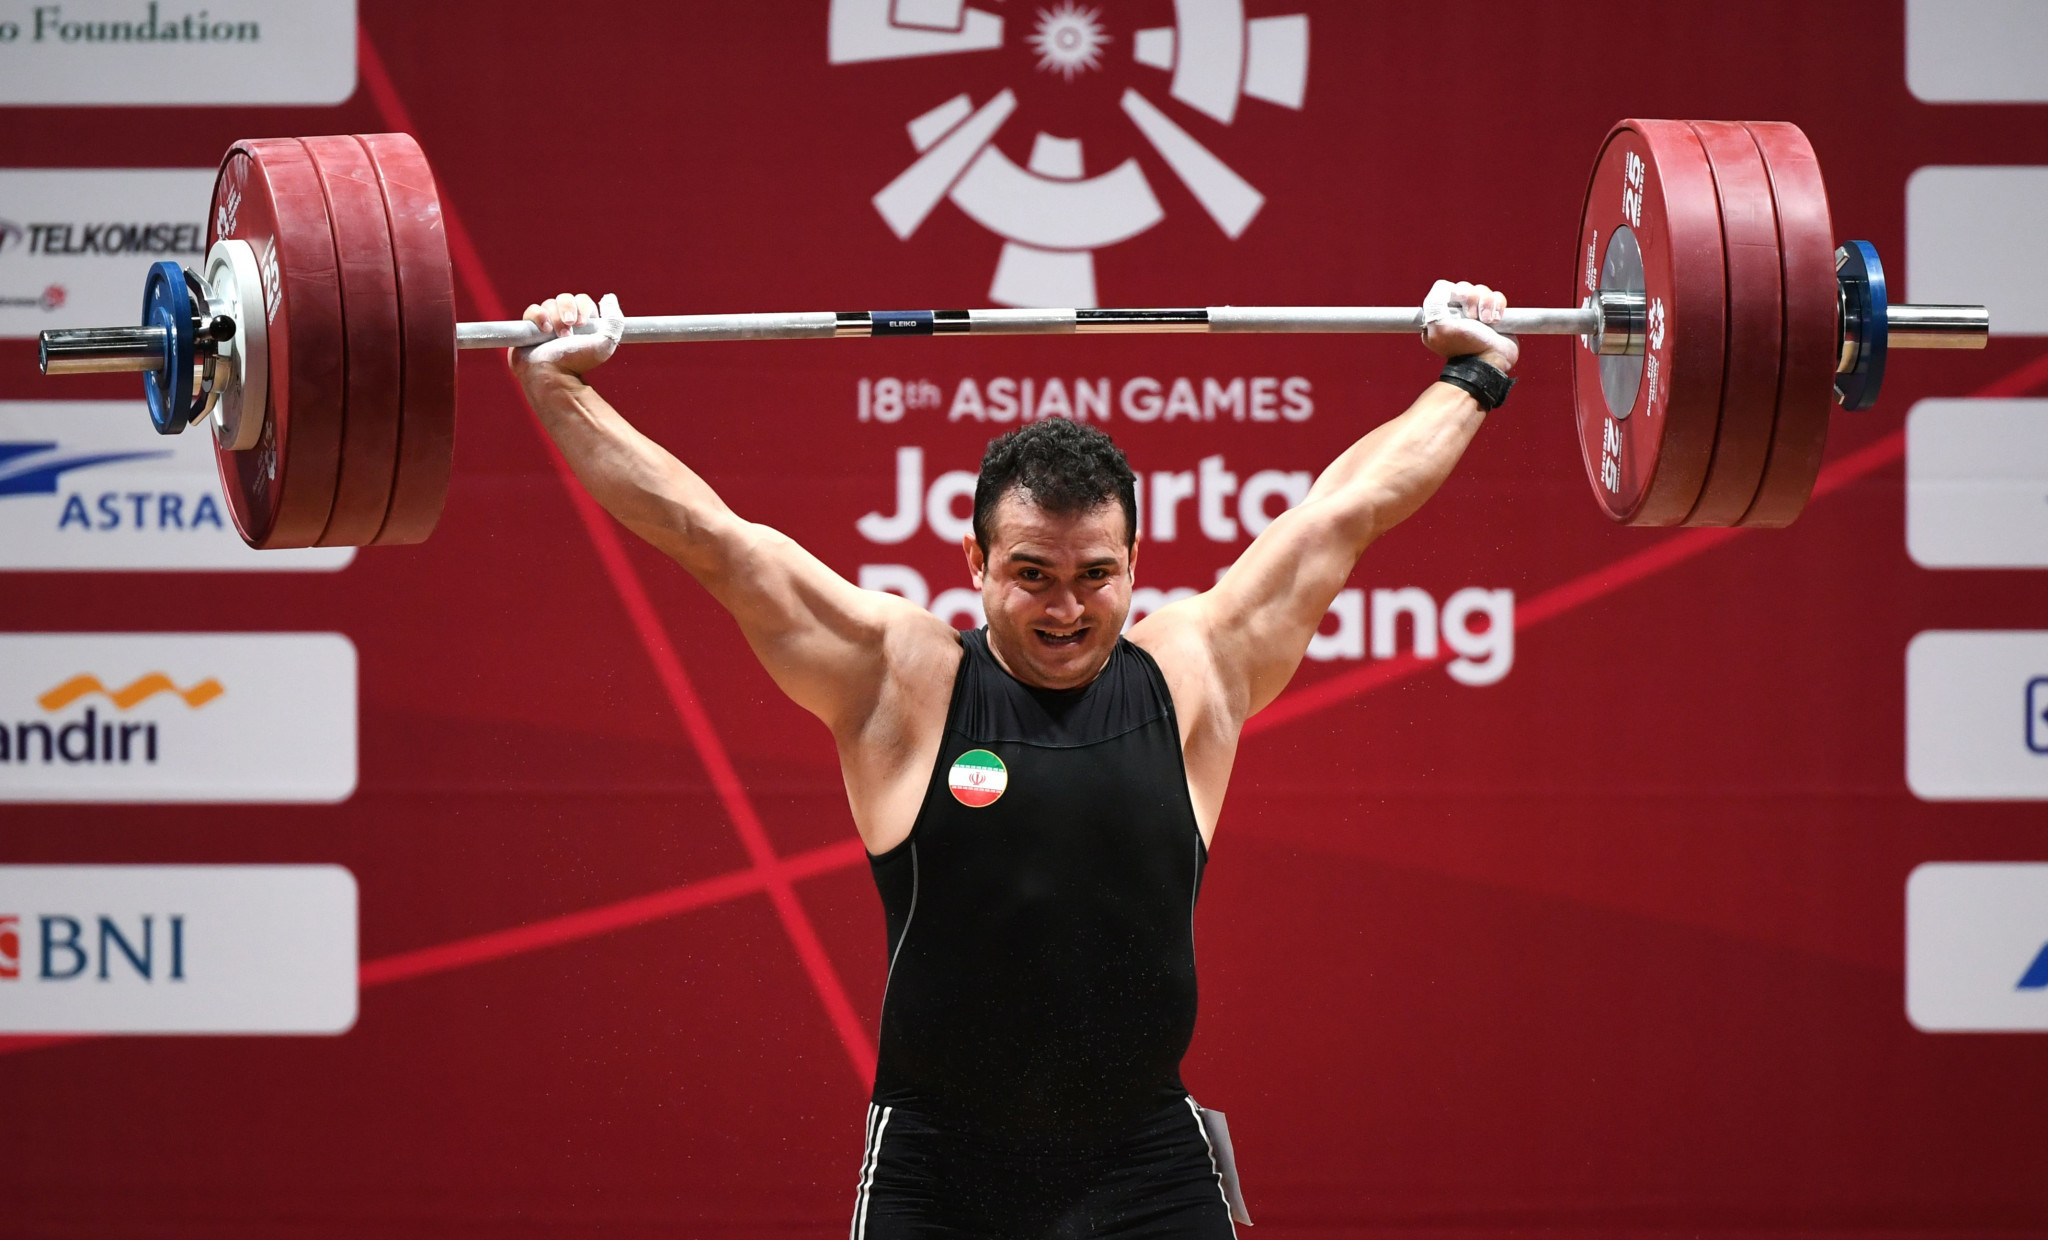 Iran's Sohrab Moradi broke a 19-year-old snatch world record on his way to winning the men's 94 kilograms weightlifting gold medal ©Getty Images